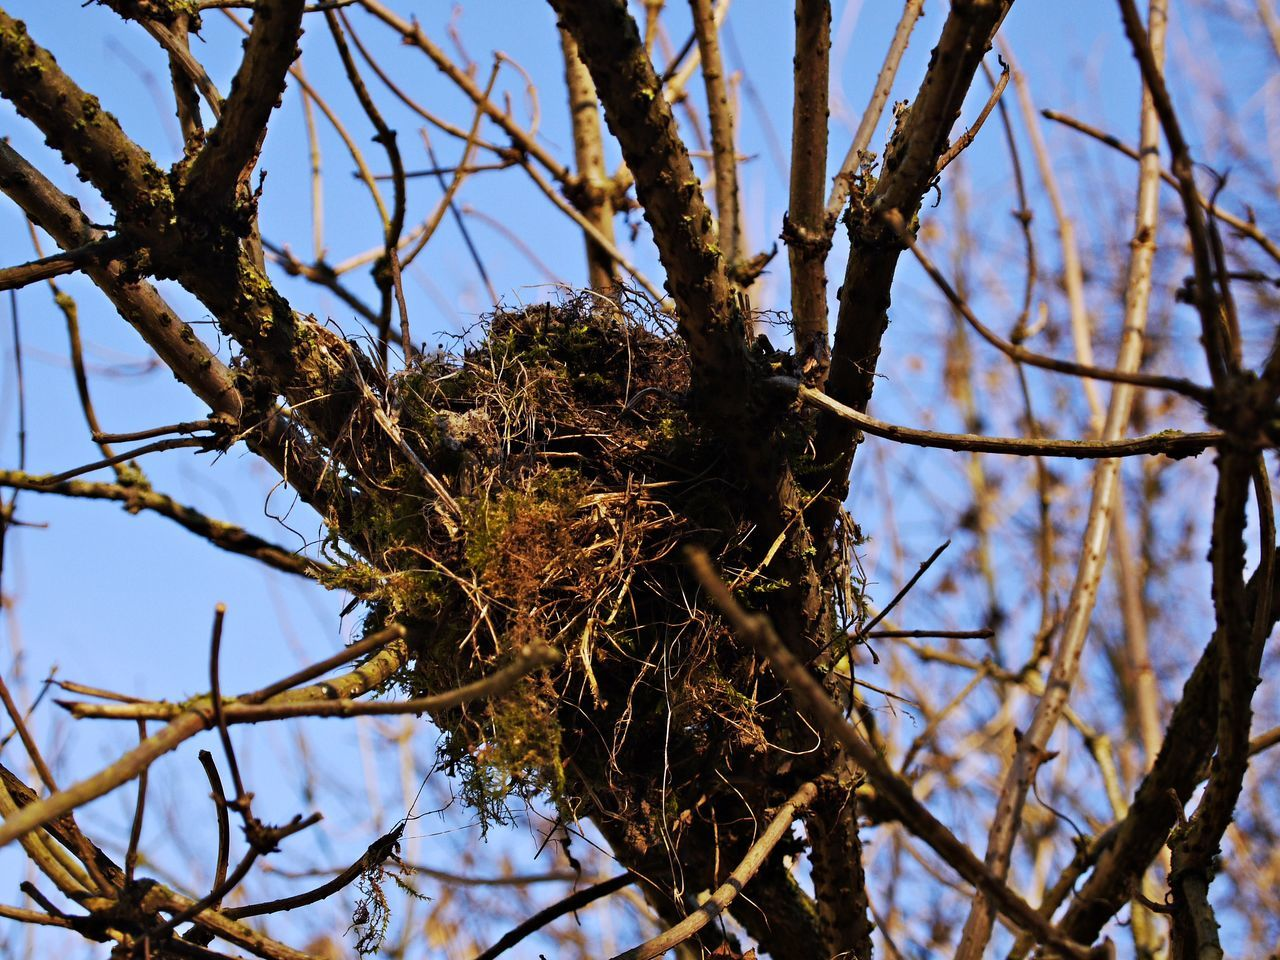 tree, plant, branch, low angle view, animal nest, nature, day, sky, bird nest, no people, focus on foreground, bird, outdoors, close-up, beauty in nature, bare tree, animal themes, twig, selective focus, animal, dead plant